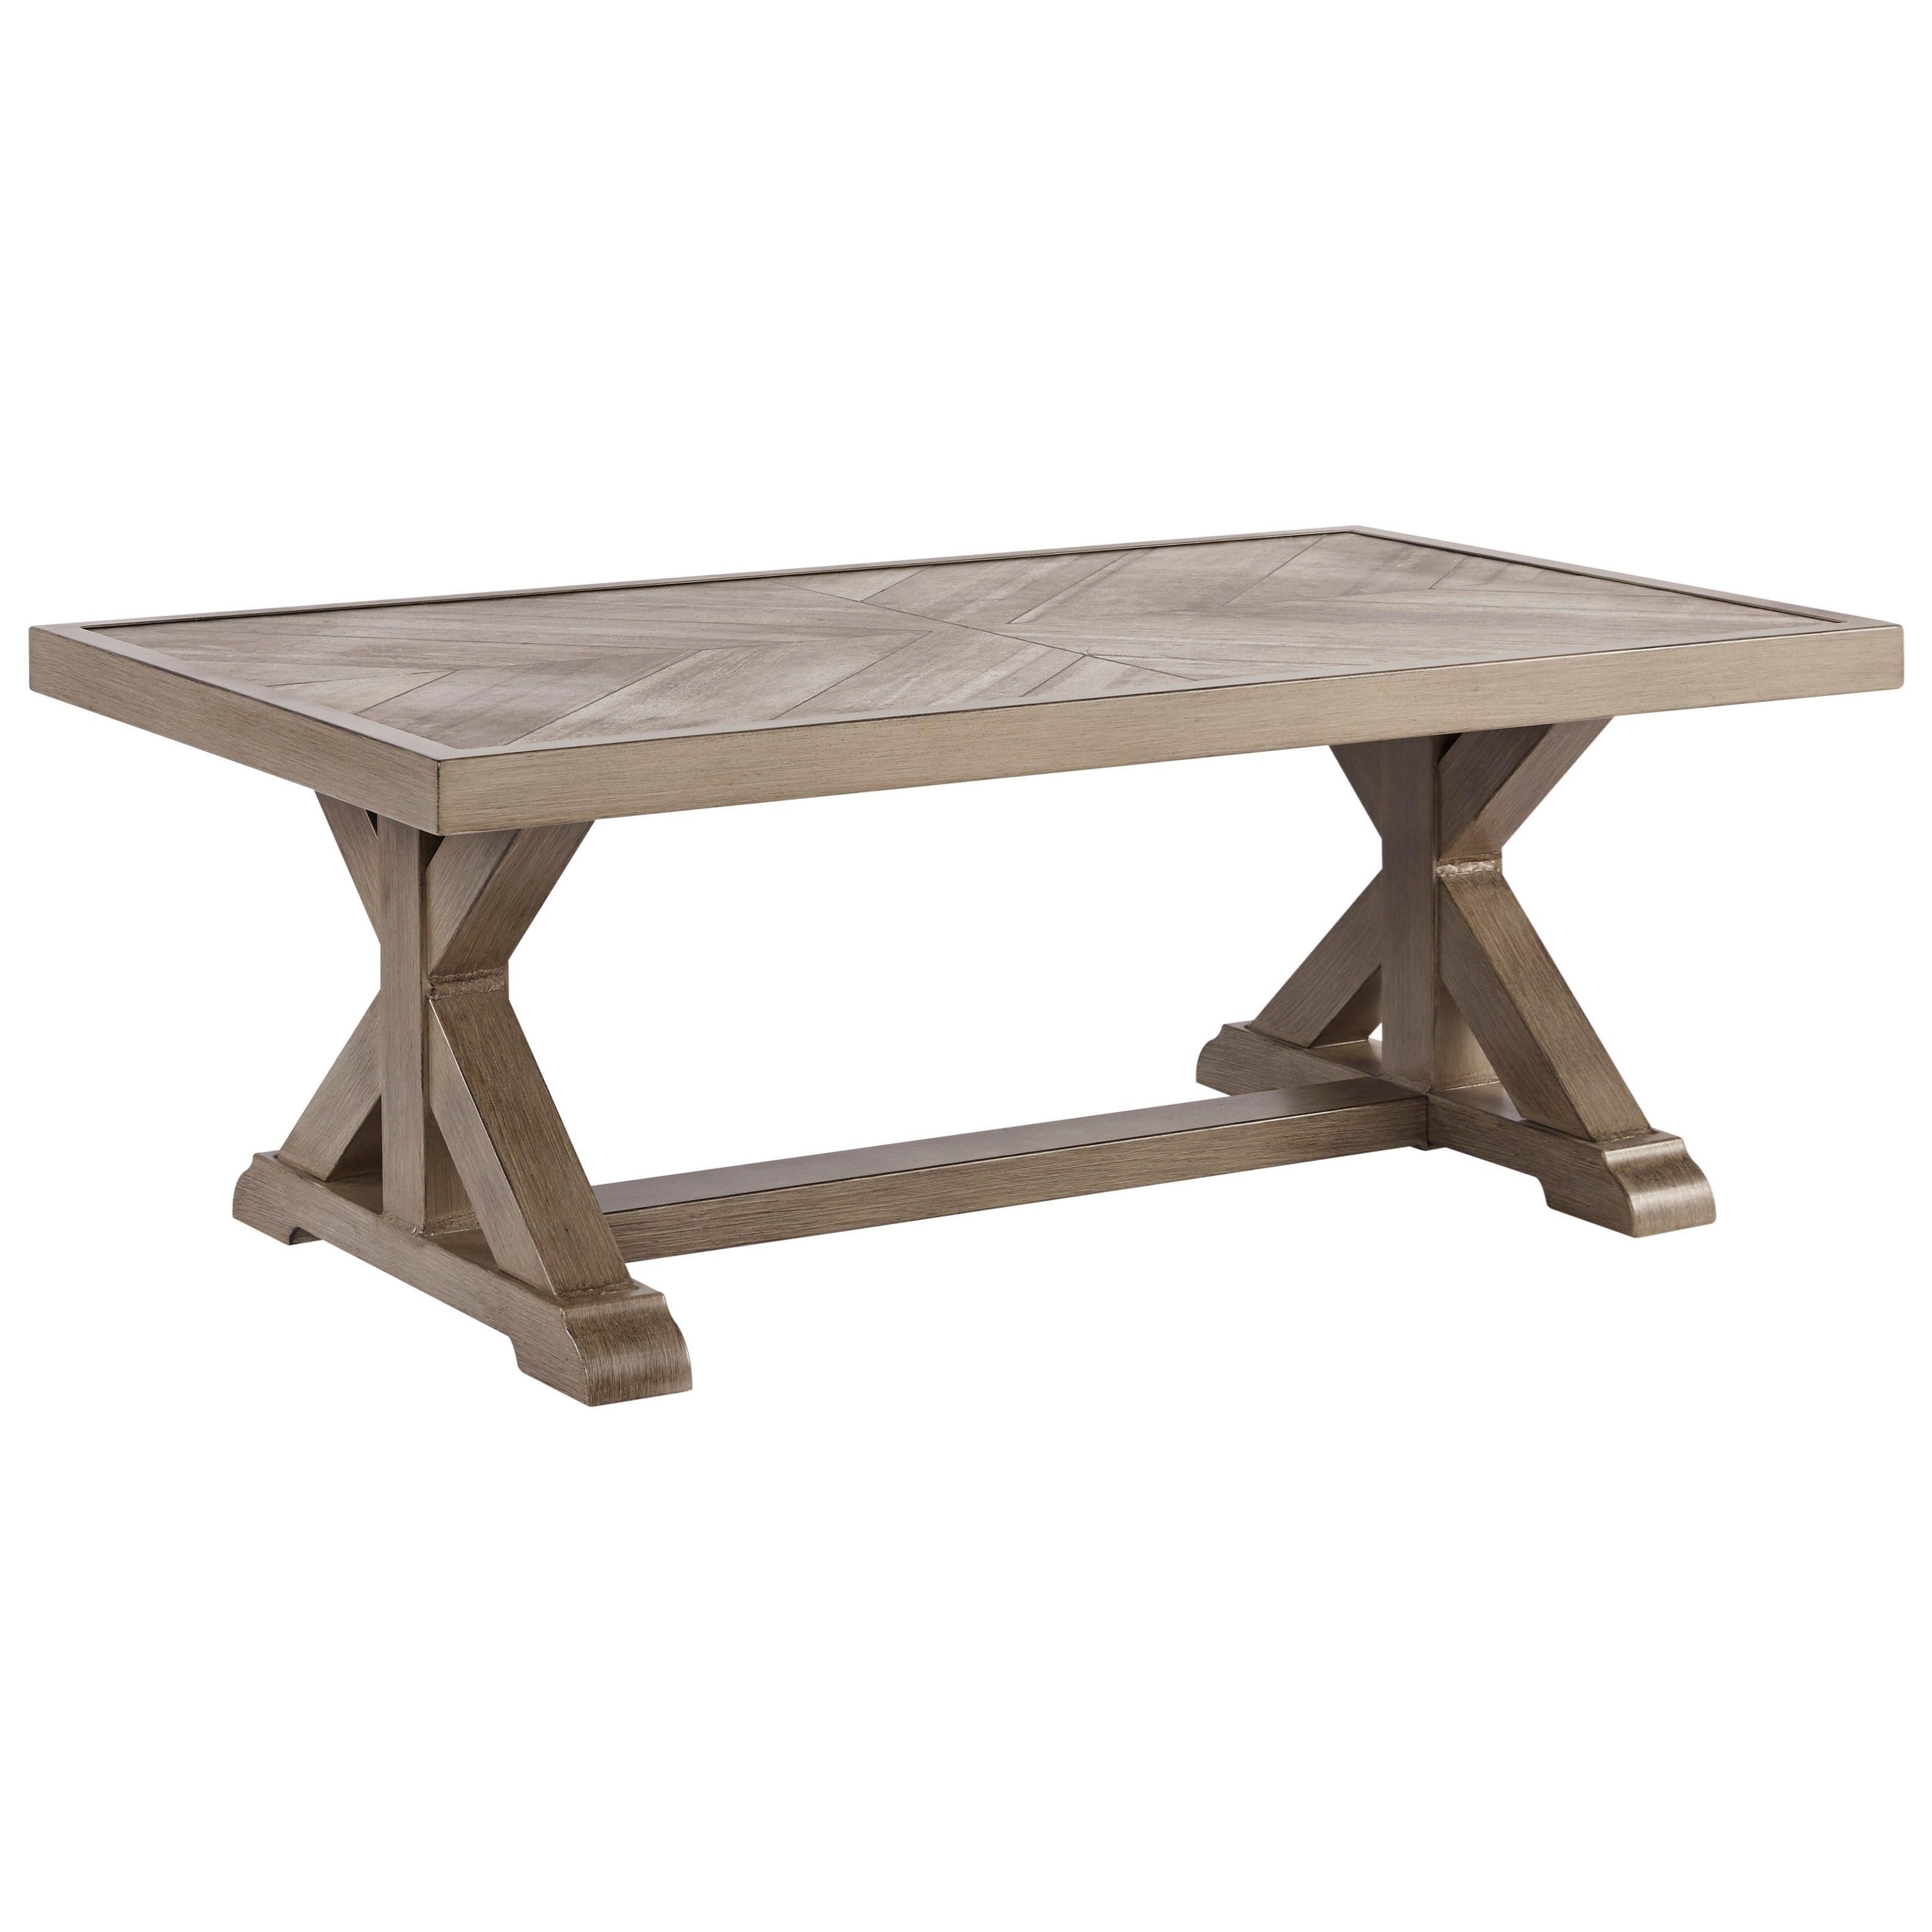 Beachcroft Rectangular Cocktail Table by Signature Design by Ashley at Lapeer Furniture & Mattress Center